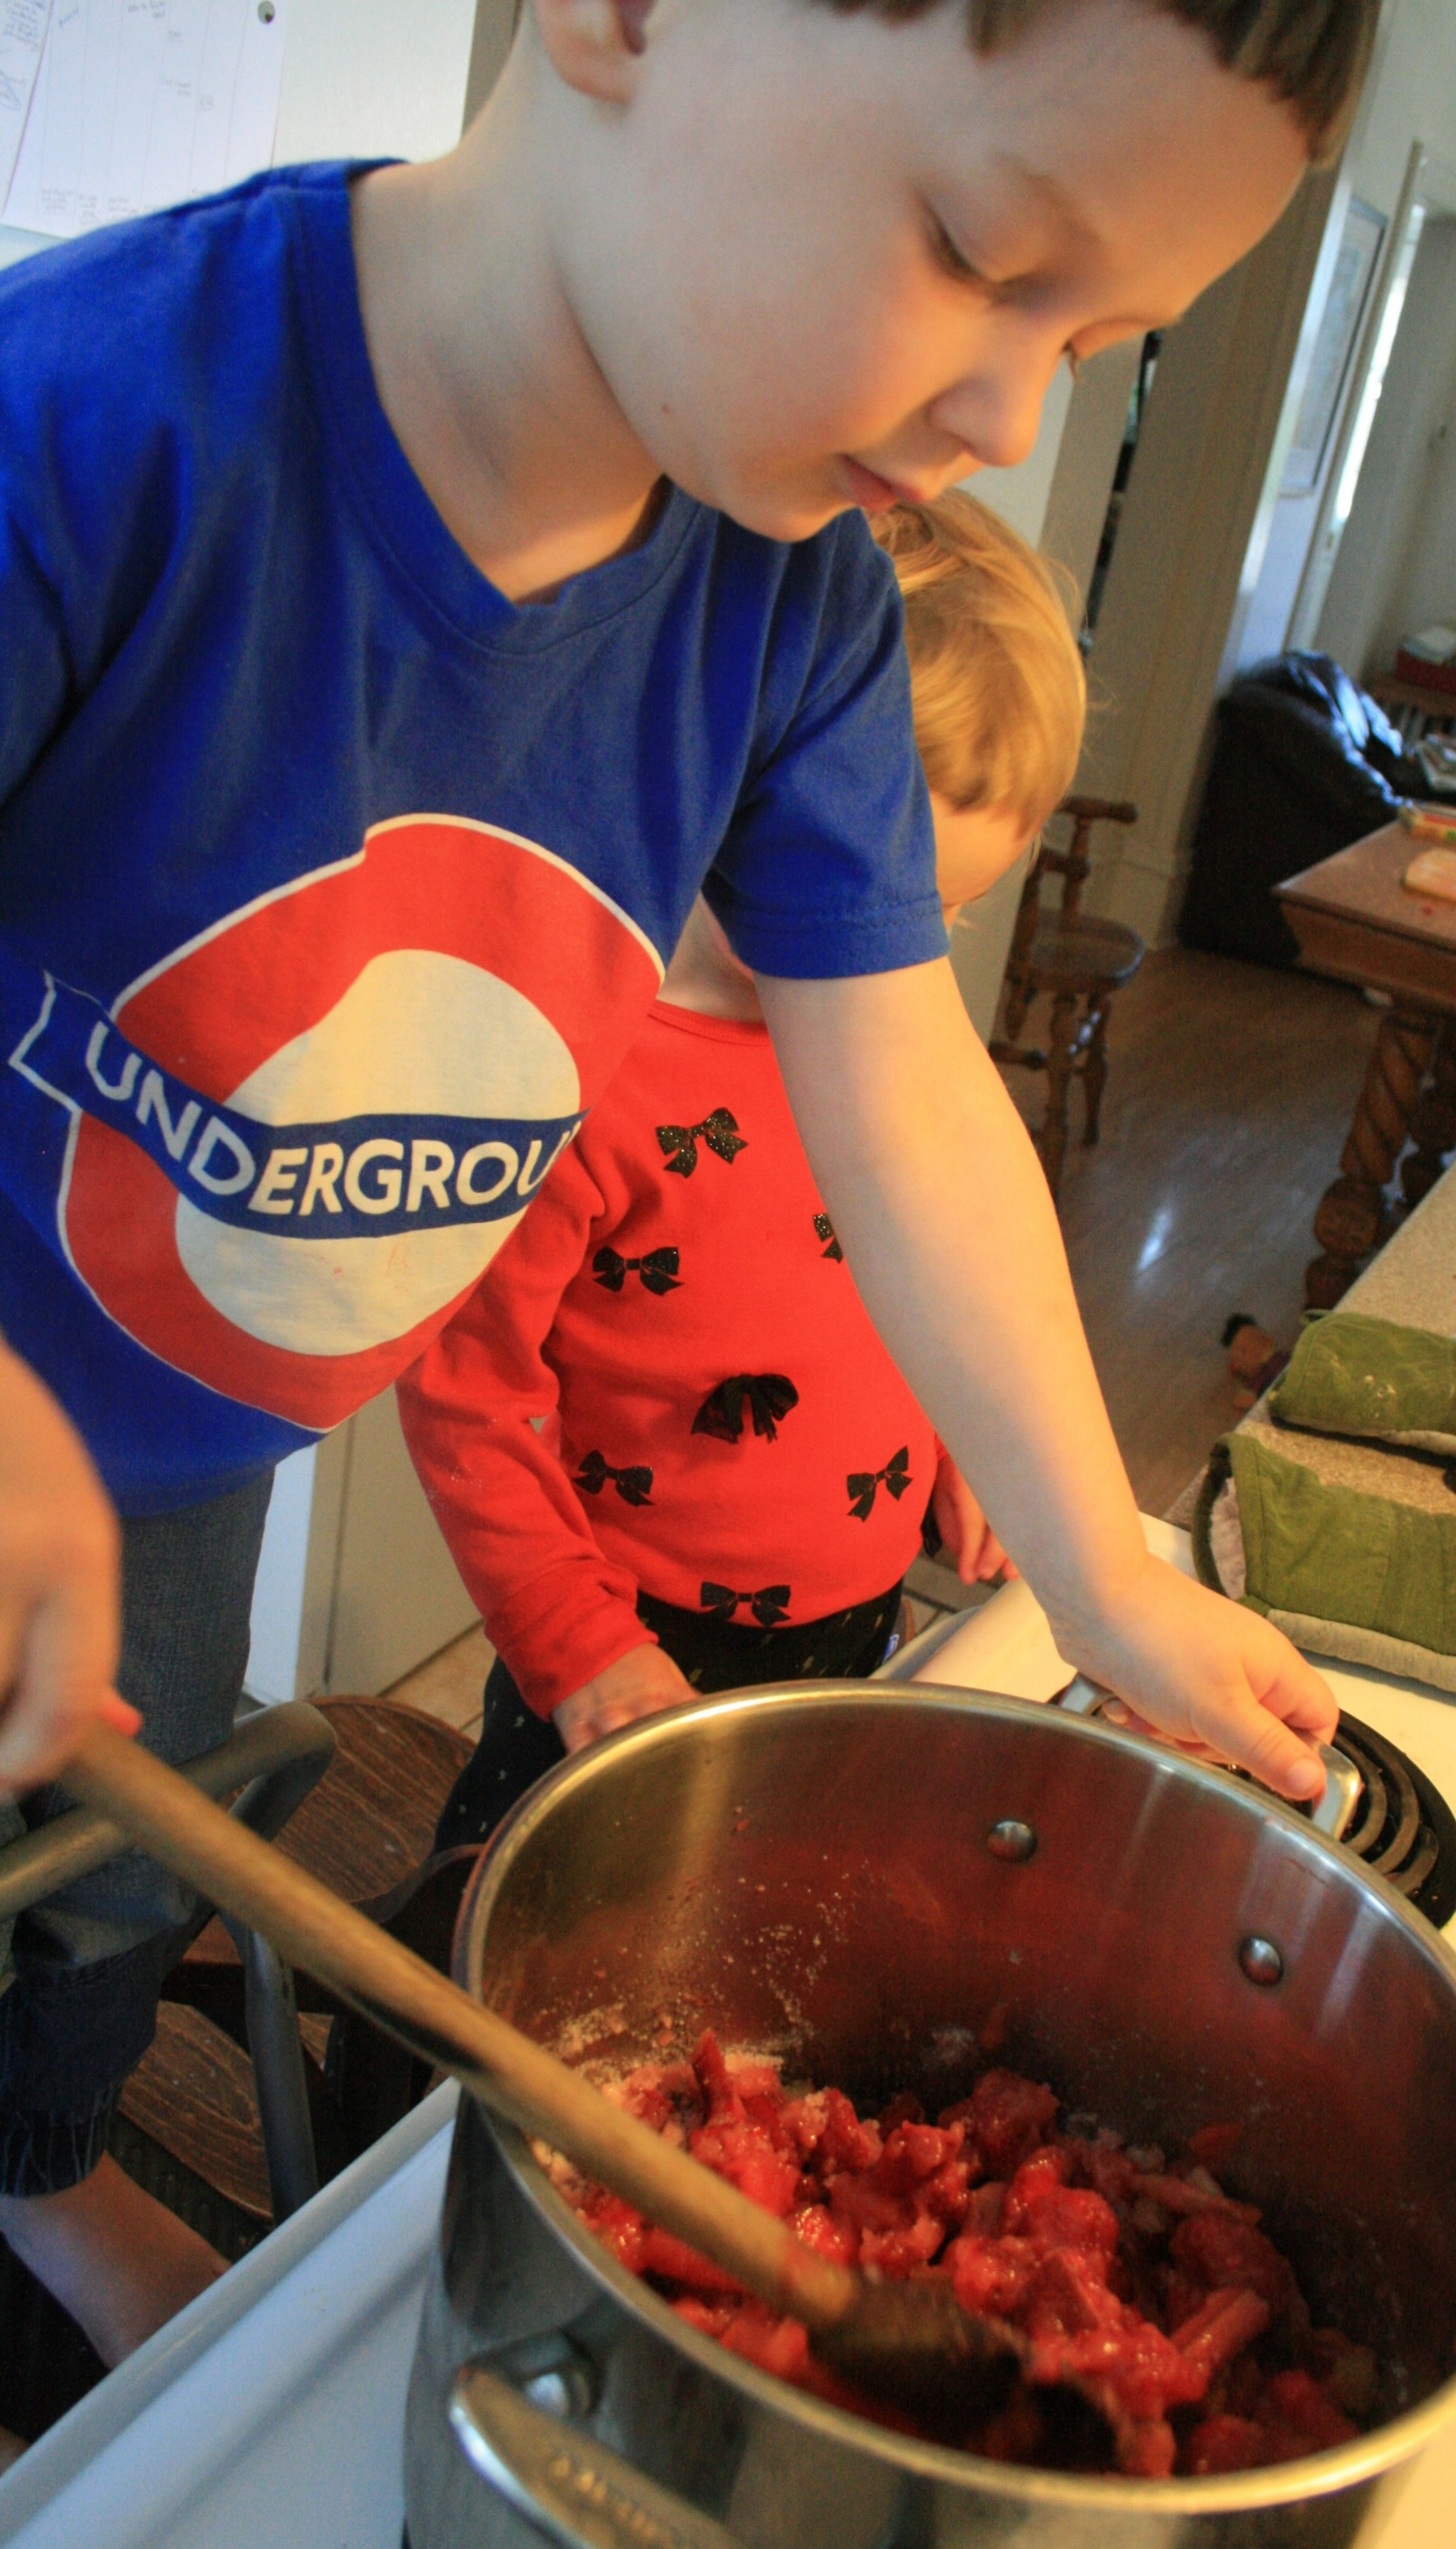 On a stool stirring the ingredients together. Sturdy stool, deep pot, long spoon, watchful parental eye.